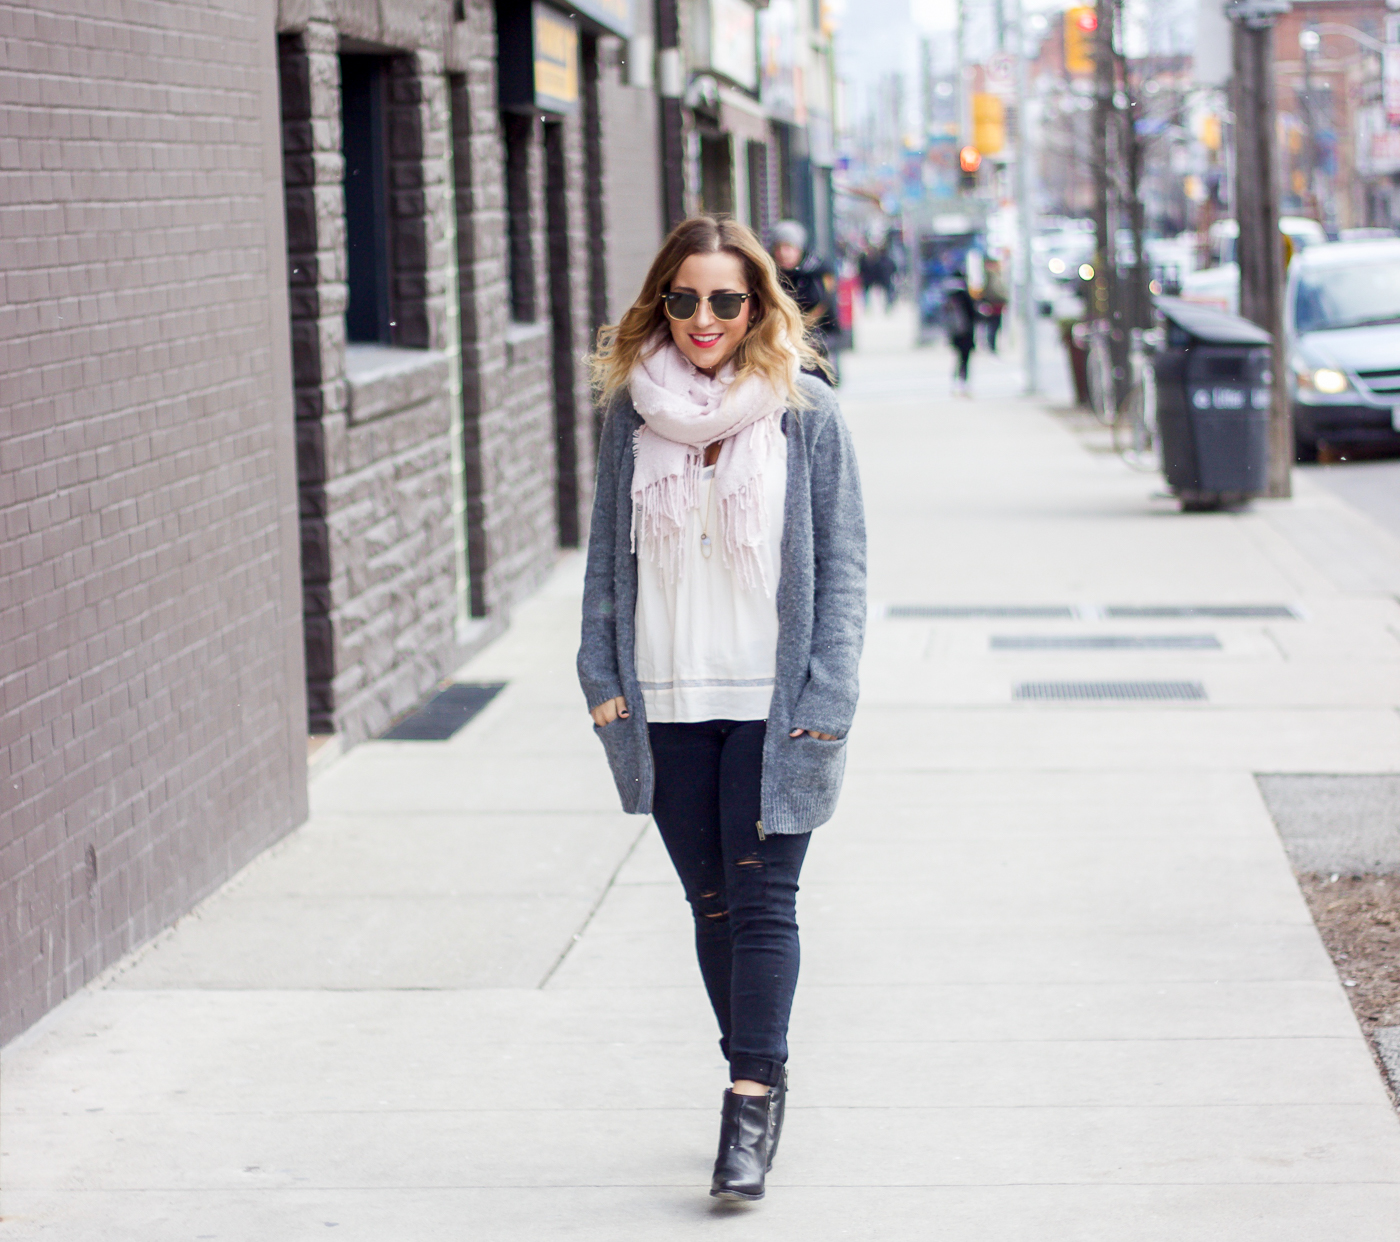 Toronto life and style blogger, Jackie Goldhar is wearing an Old Navy cardigan, pink scarf from Indigo and black skinny jeans from Zara